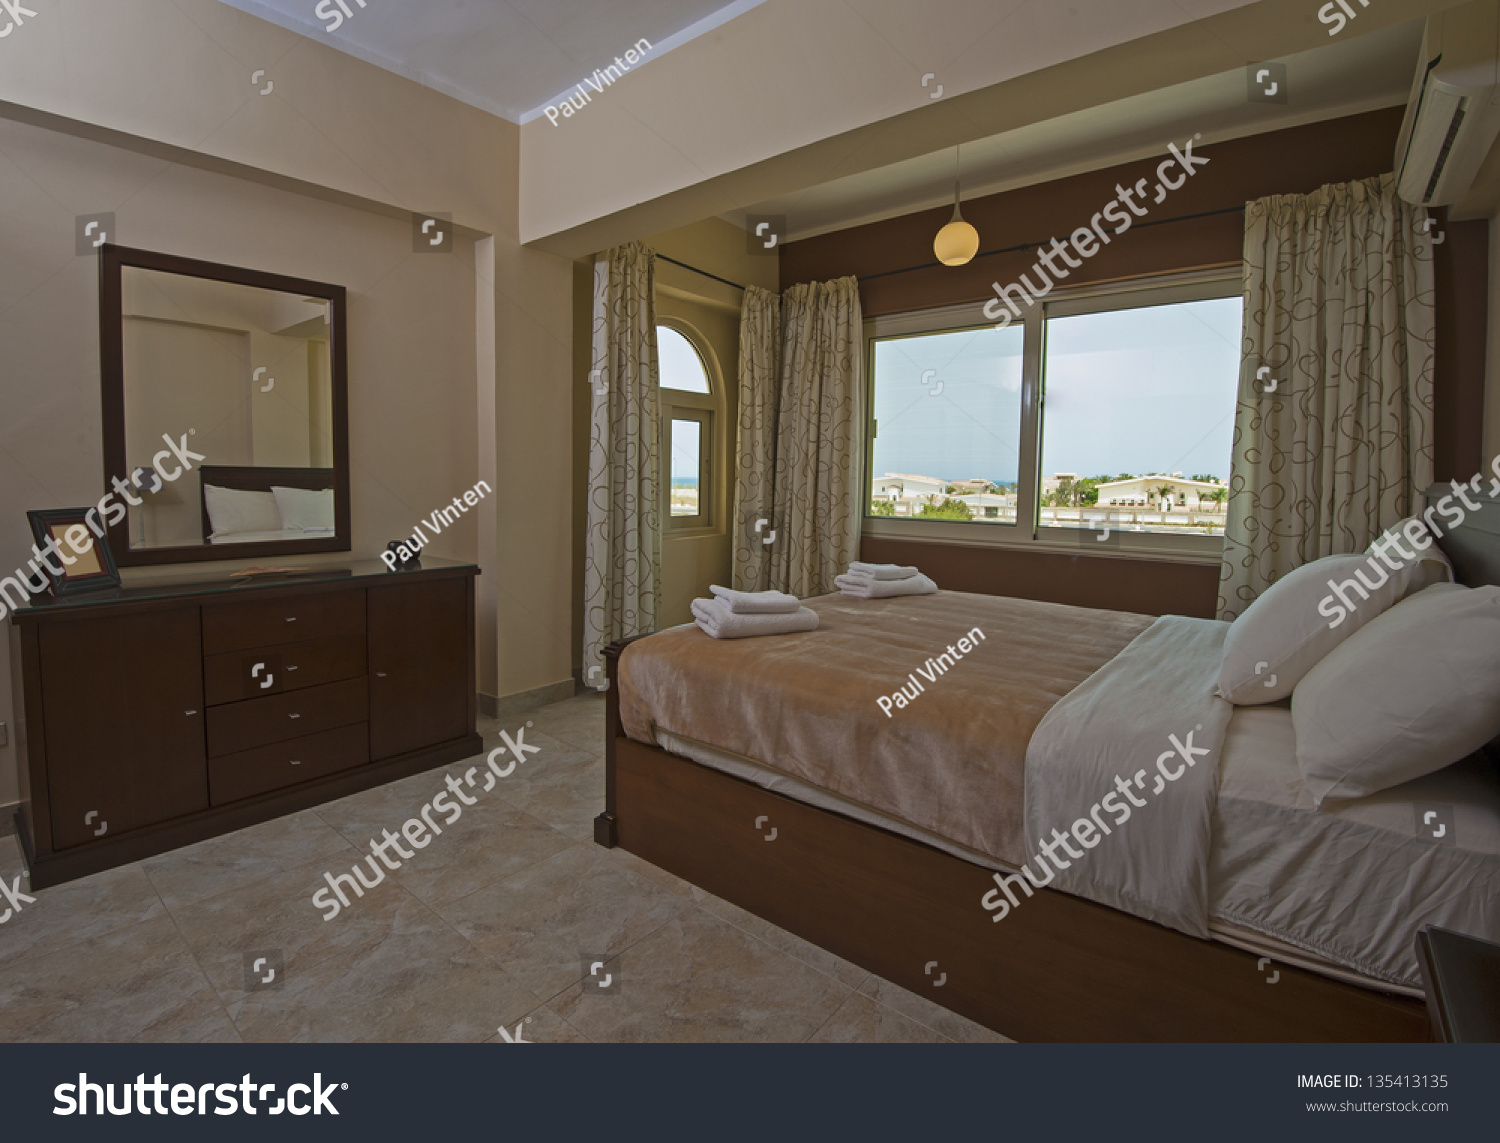 show home interior design. Bedroom in a luxury apartment show home with interior design Luxury Apartment Show Home Interior Stock Photo 135413135